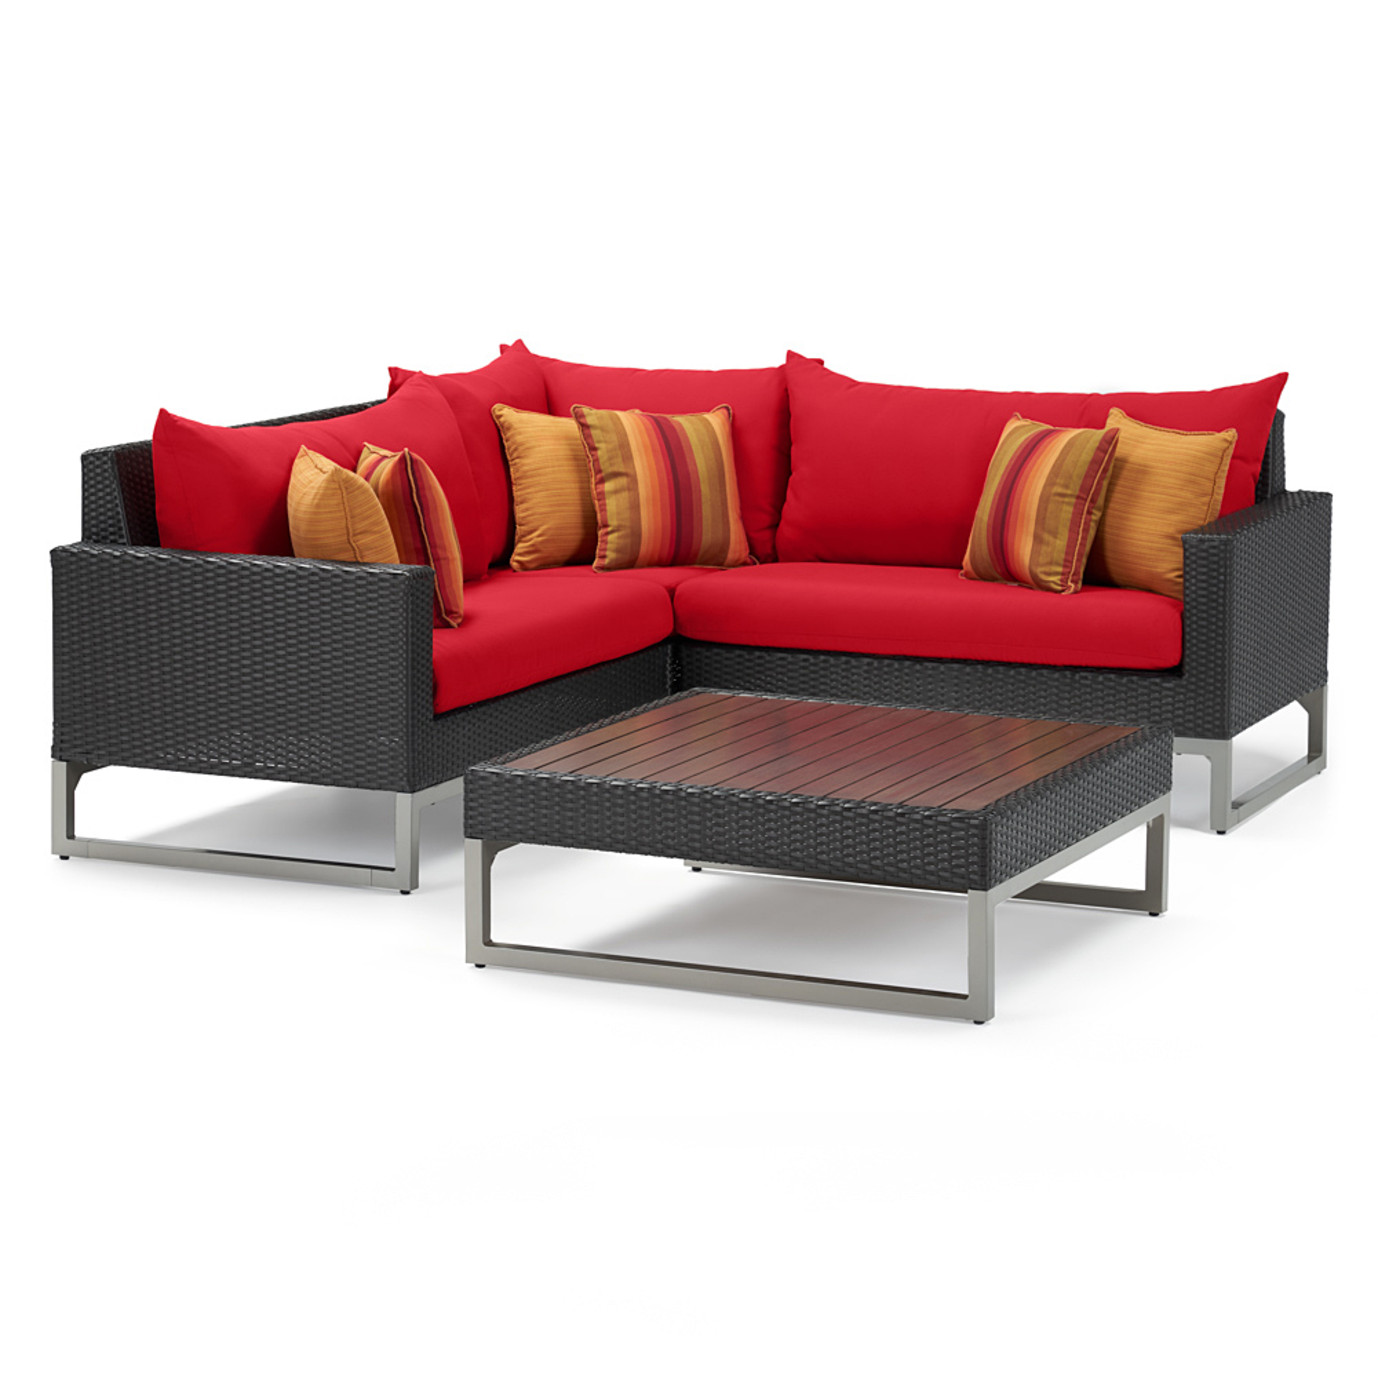 Milo Espresso 4 Piece Sectional - Sunset Red